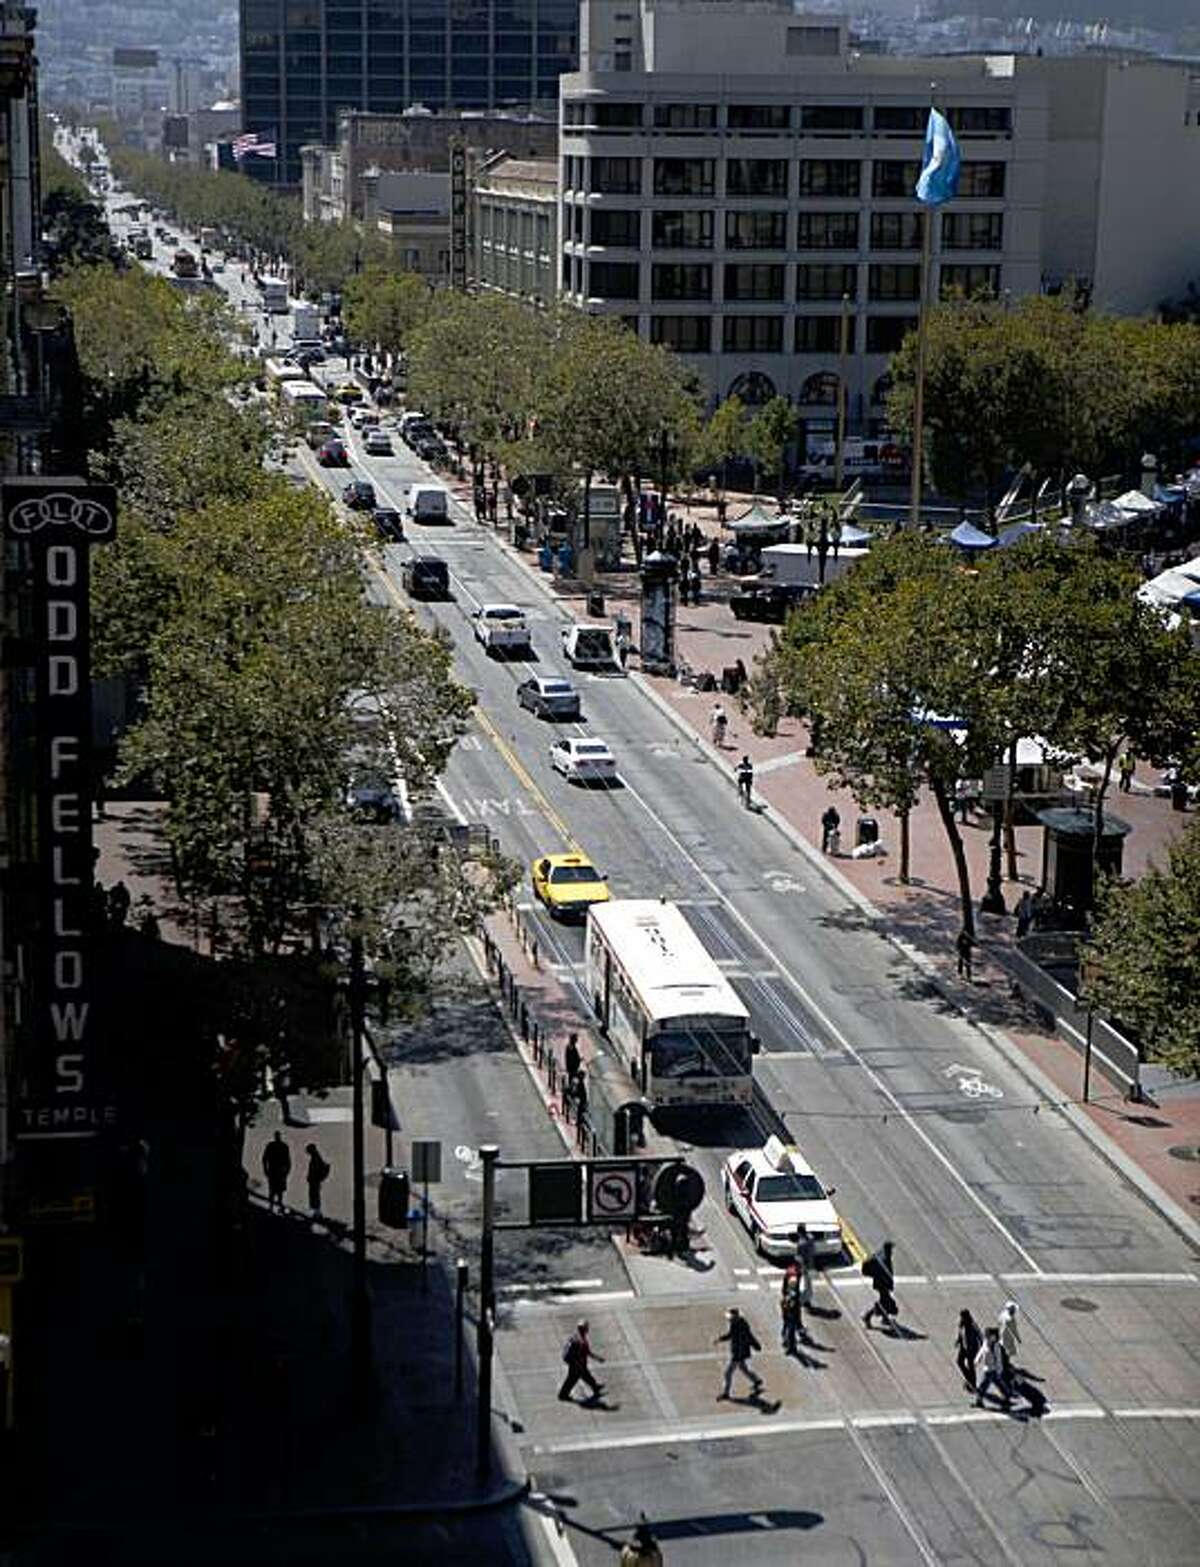 Cars, Cable cars and pedestrian share the Market Street on Wednesday Sep. 9, 2009 in San Francisco, Calif. Starting Sept. 29 Market Street will be closed to cars heading westbound from Van Ness to the Embarcadero and eastbound traffic will have to turn right on 6th,8th or 10th. The pilot project is expected to become permanent and art installations and places for public concerts should replace cars and traffic.